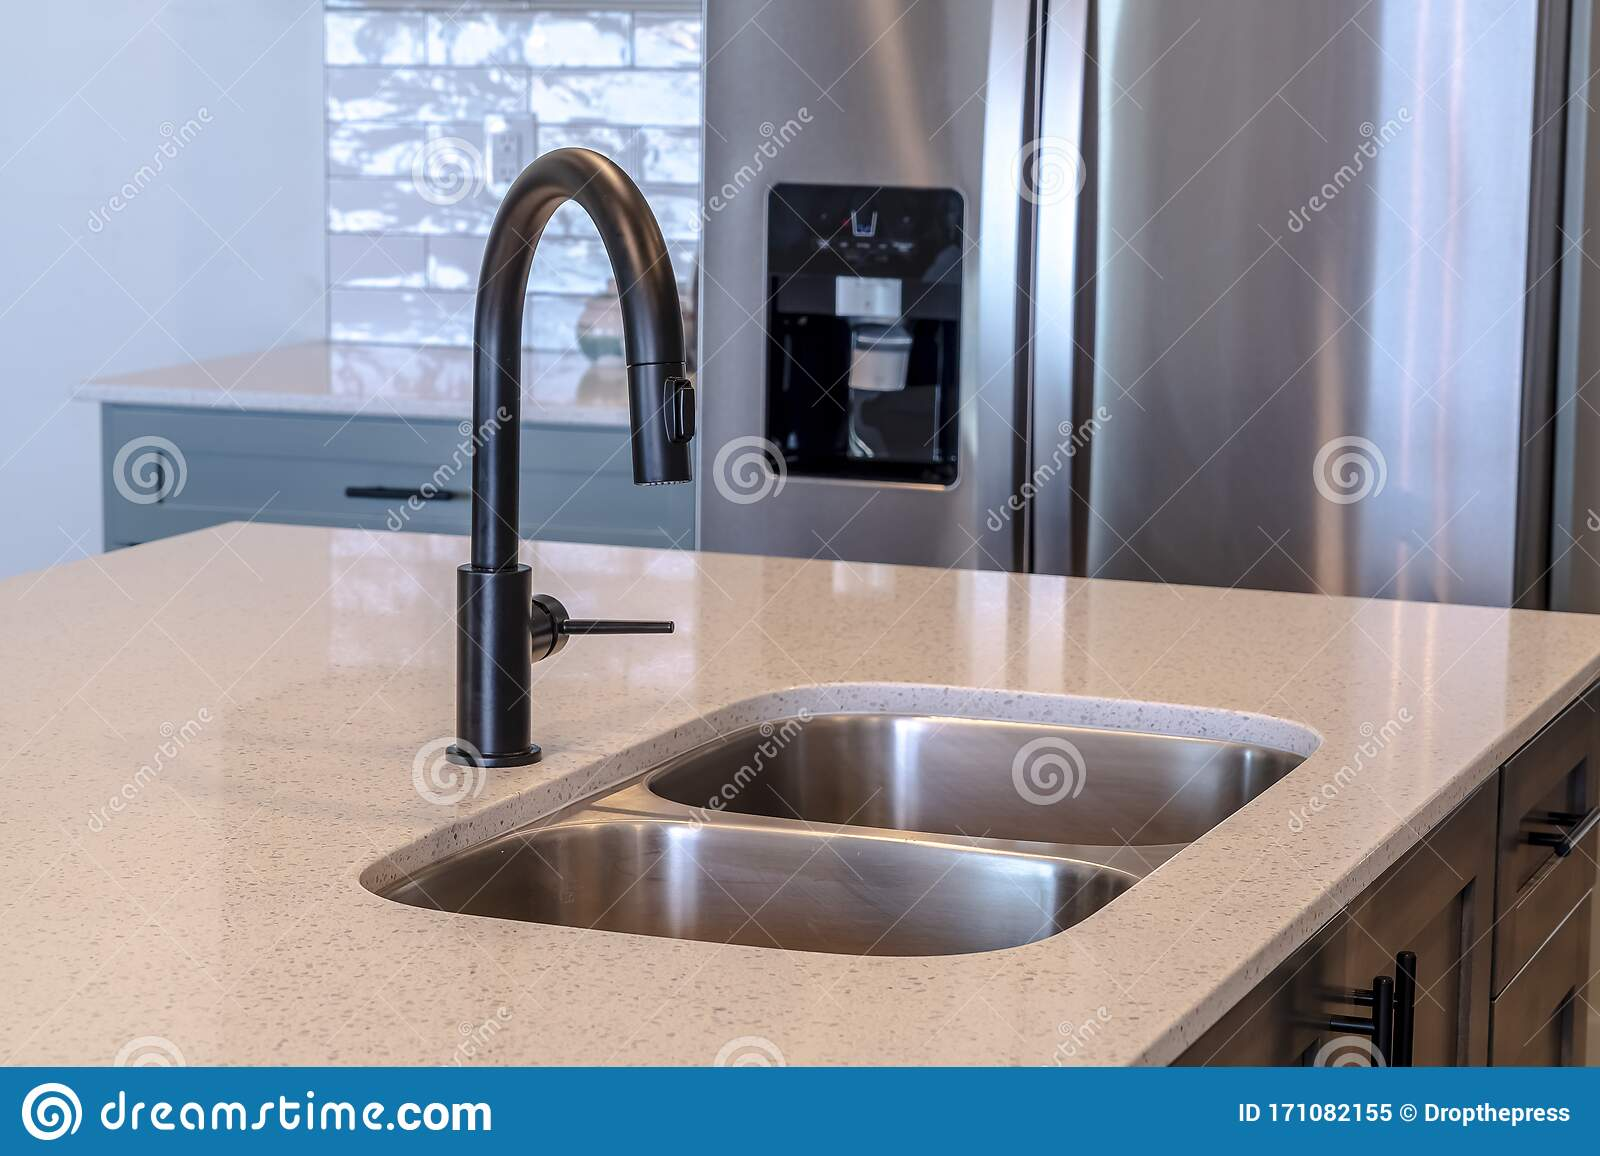 Black Faucet And Double Bowl Undermount Sink On The Kitchen Island Of Home Stock Image Image Of Dispenser Estate 171082155